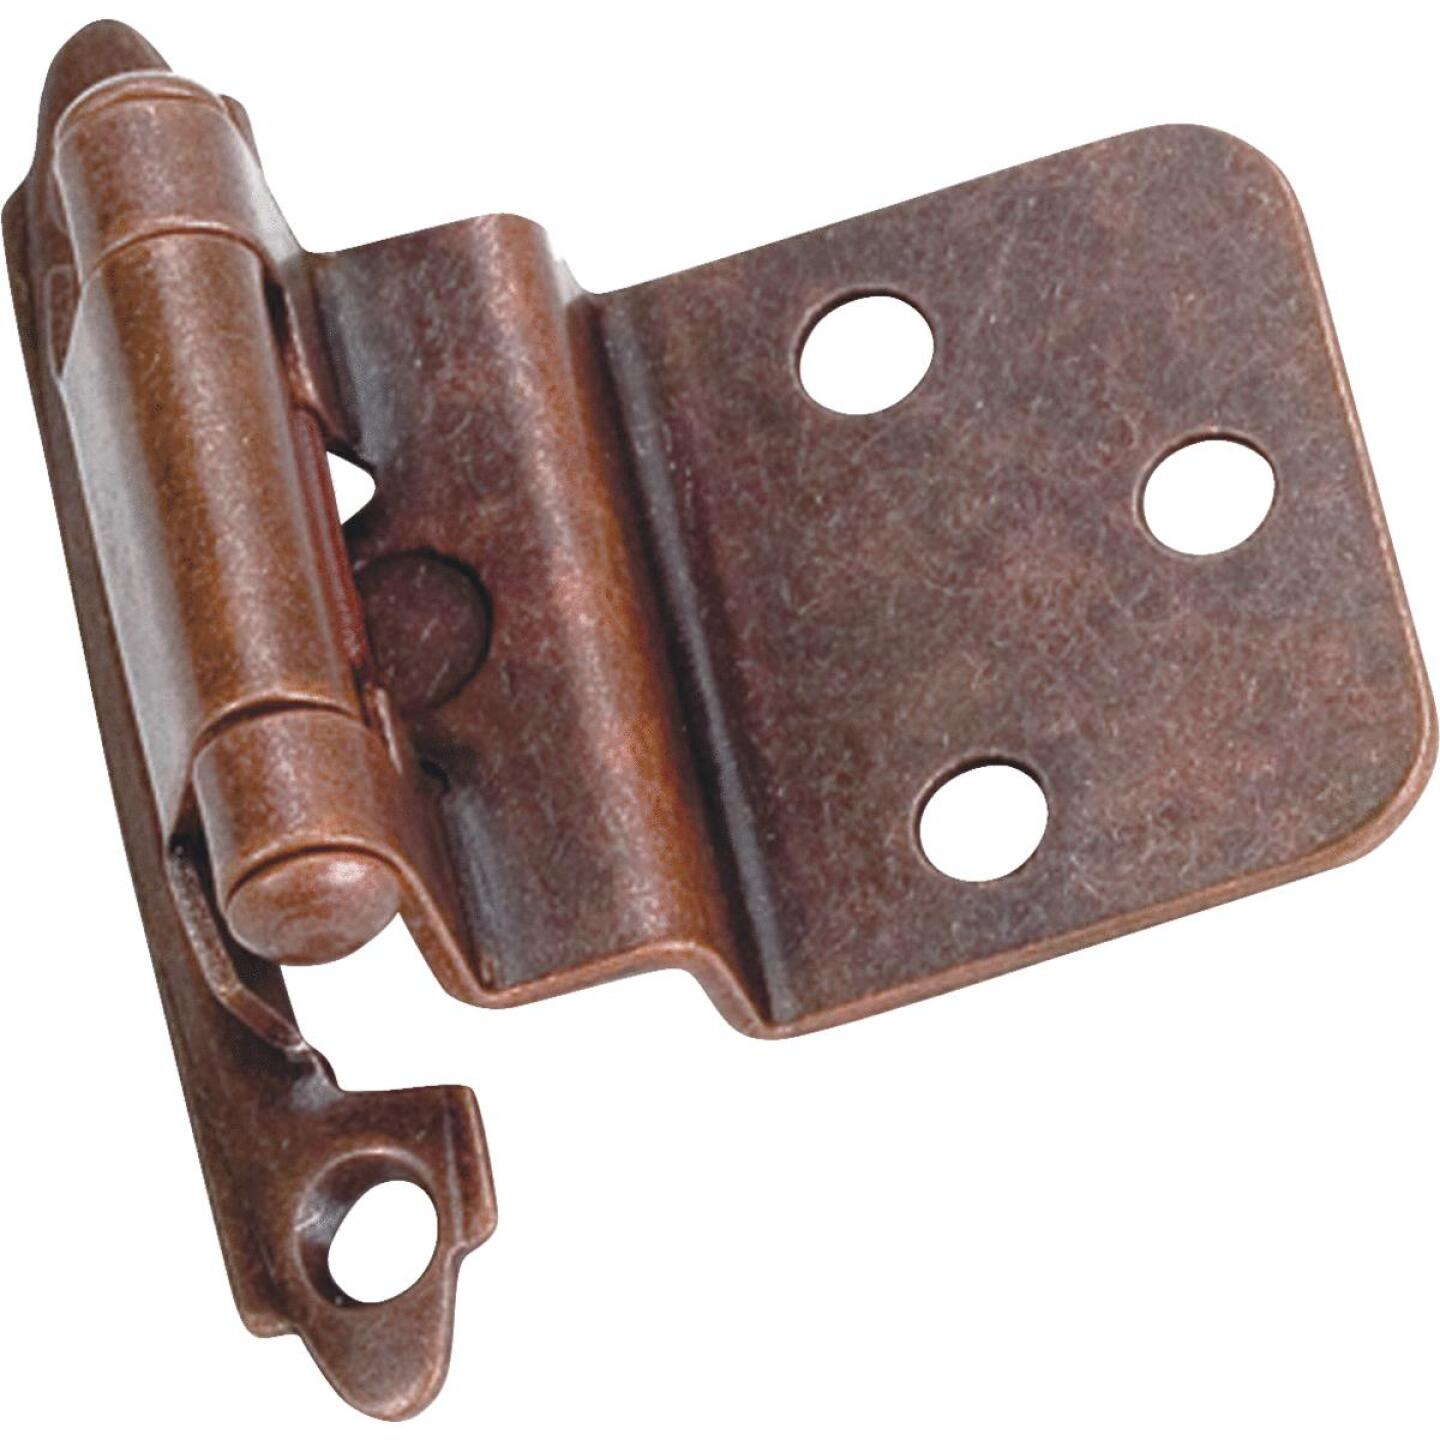 Laurey Venetian Bronze 3/8 In. Self-Closing Inset Hinge, (2-Pack) Image 1